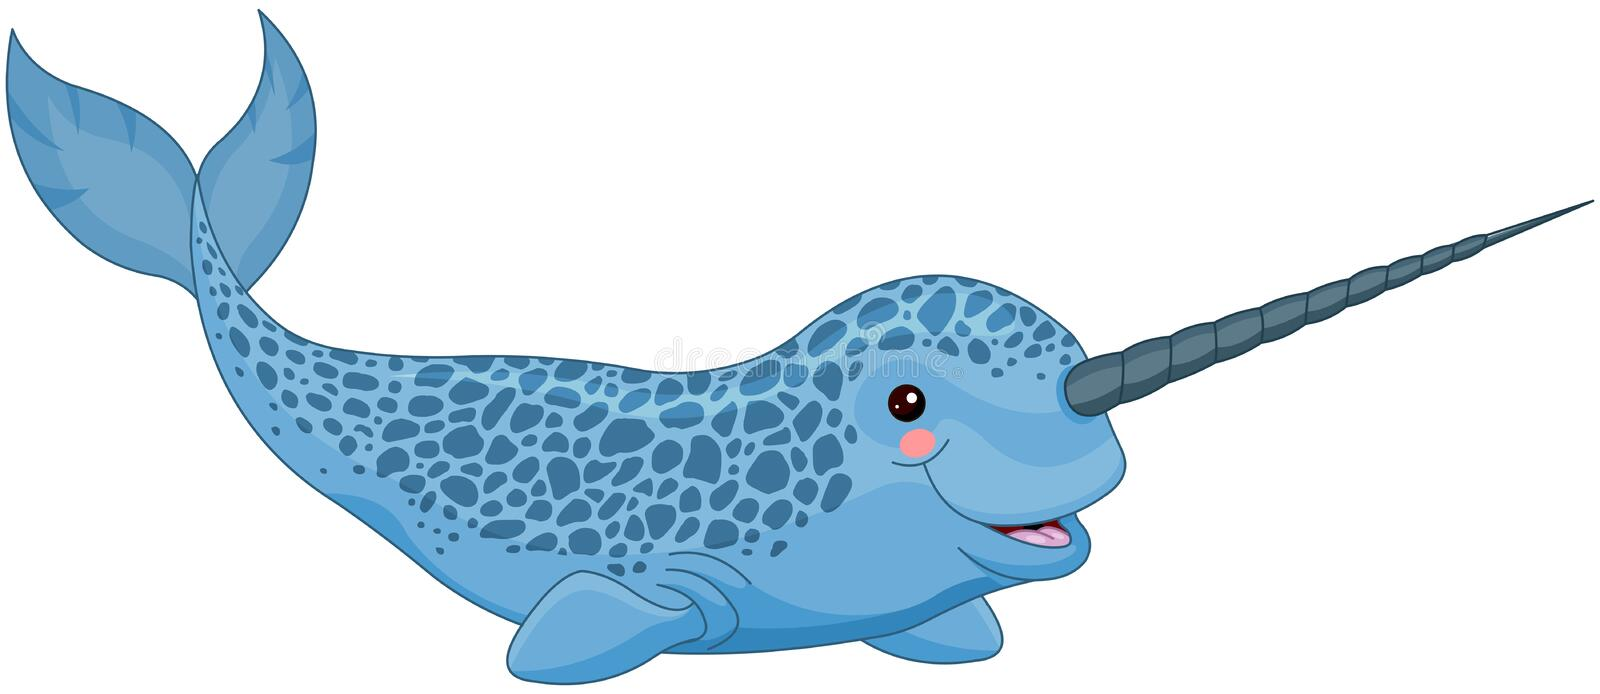 Narwhal. Illustration of a cute narwhal stock illustration